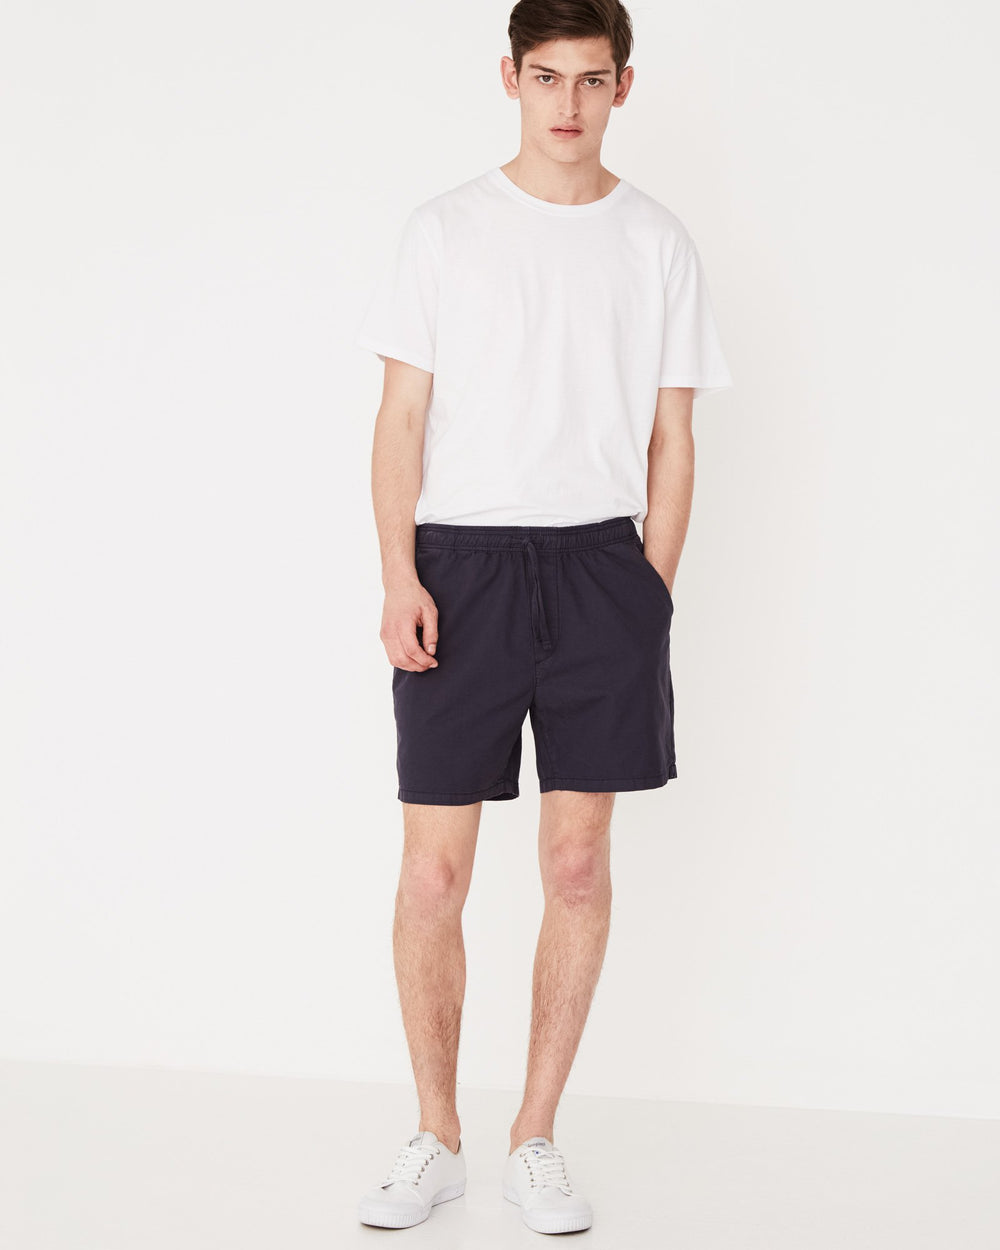 Assembly Label Contrast Linen Short Worn Navy Front View